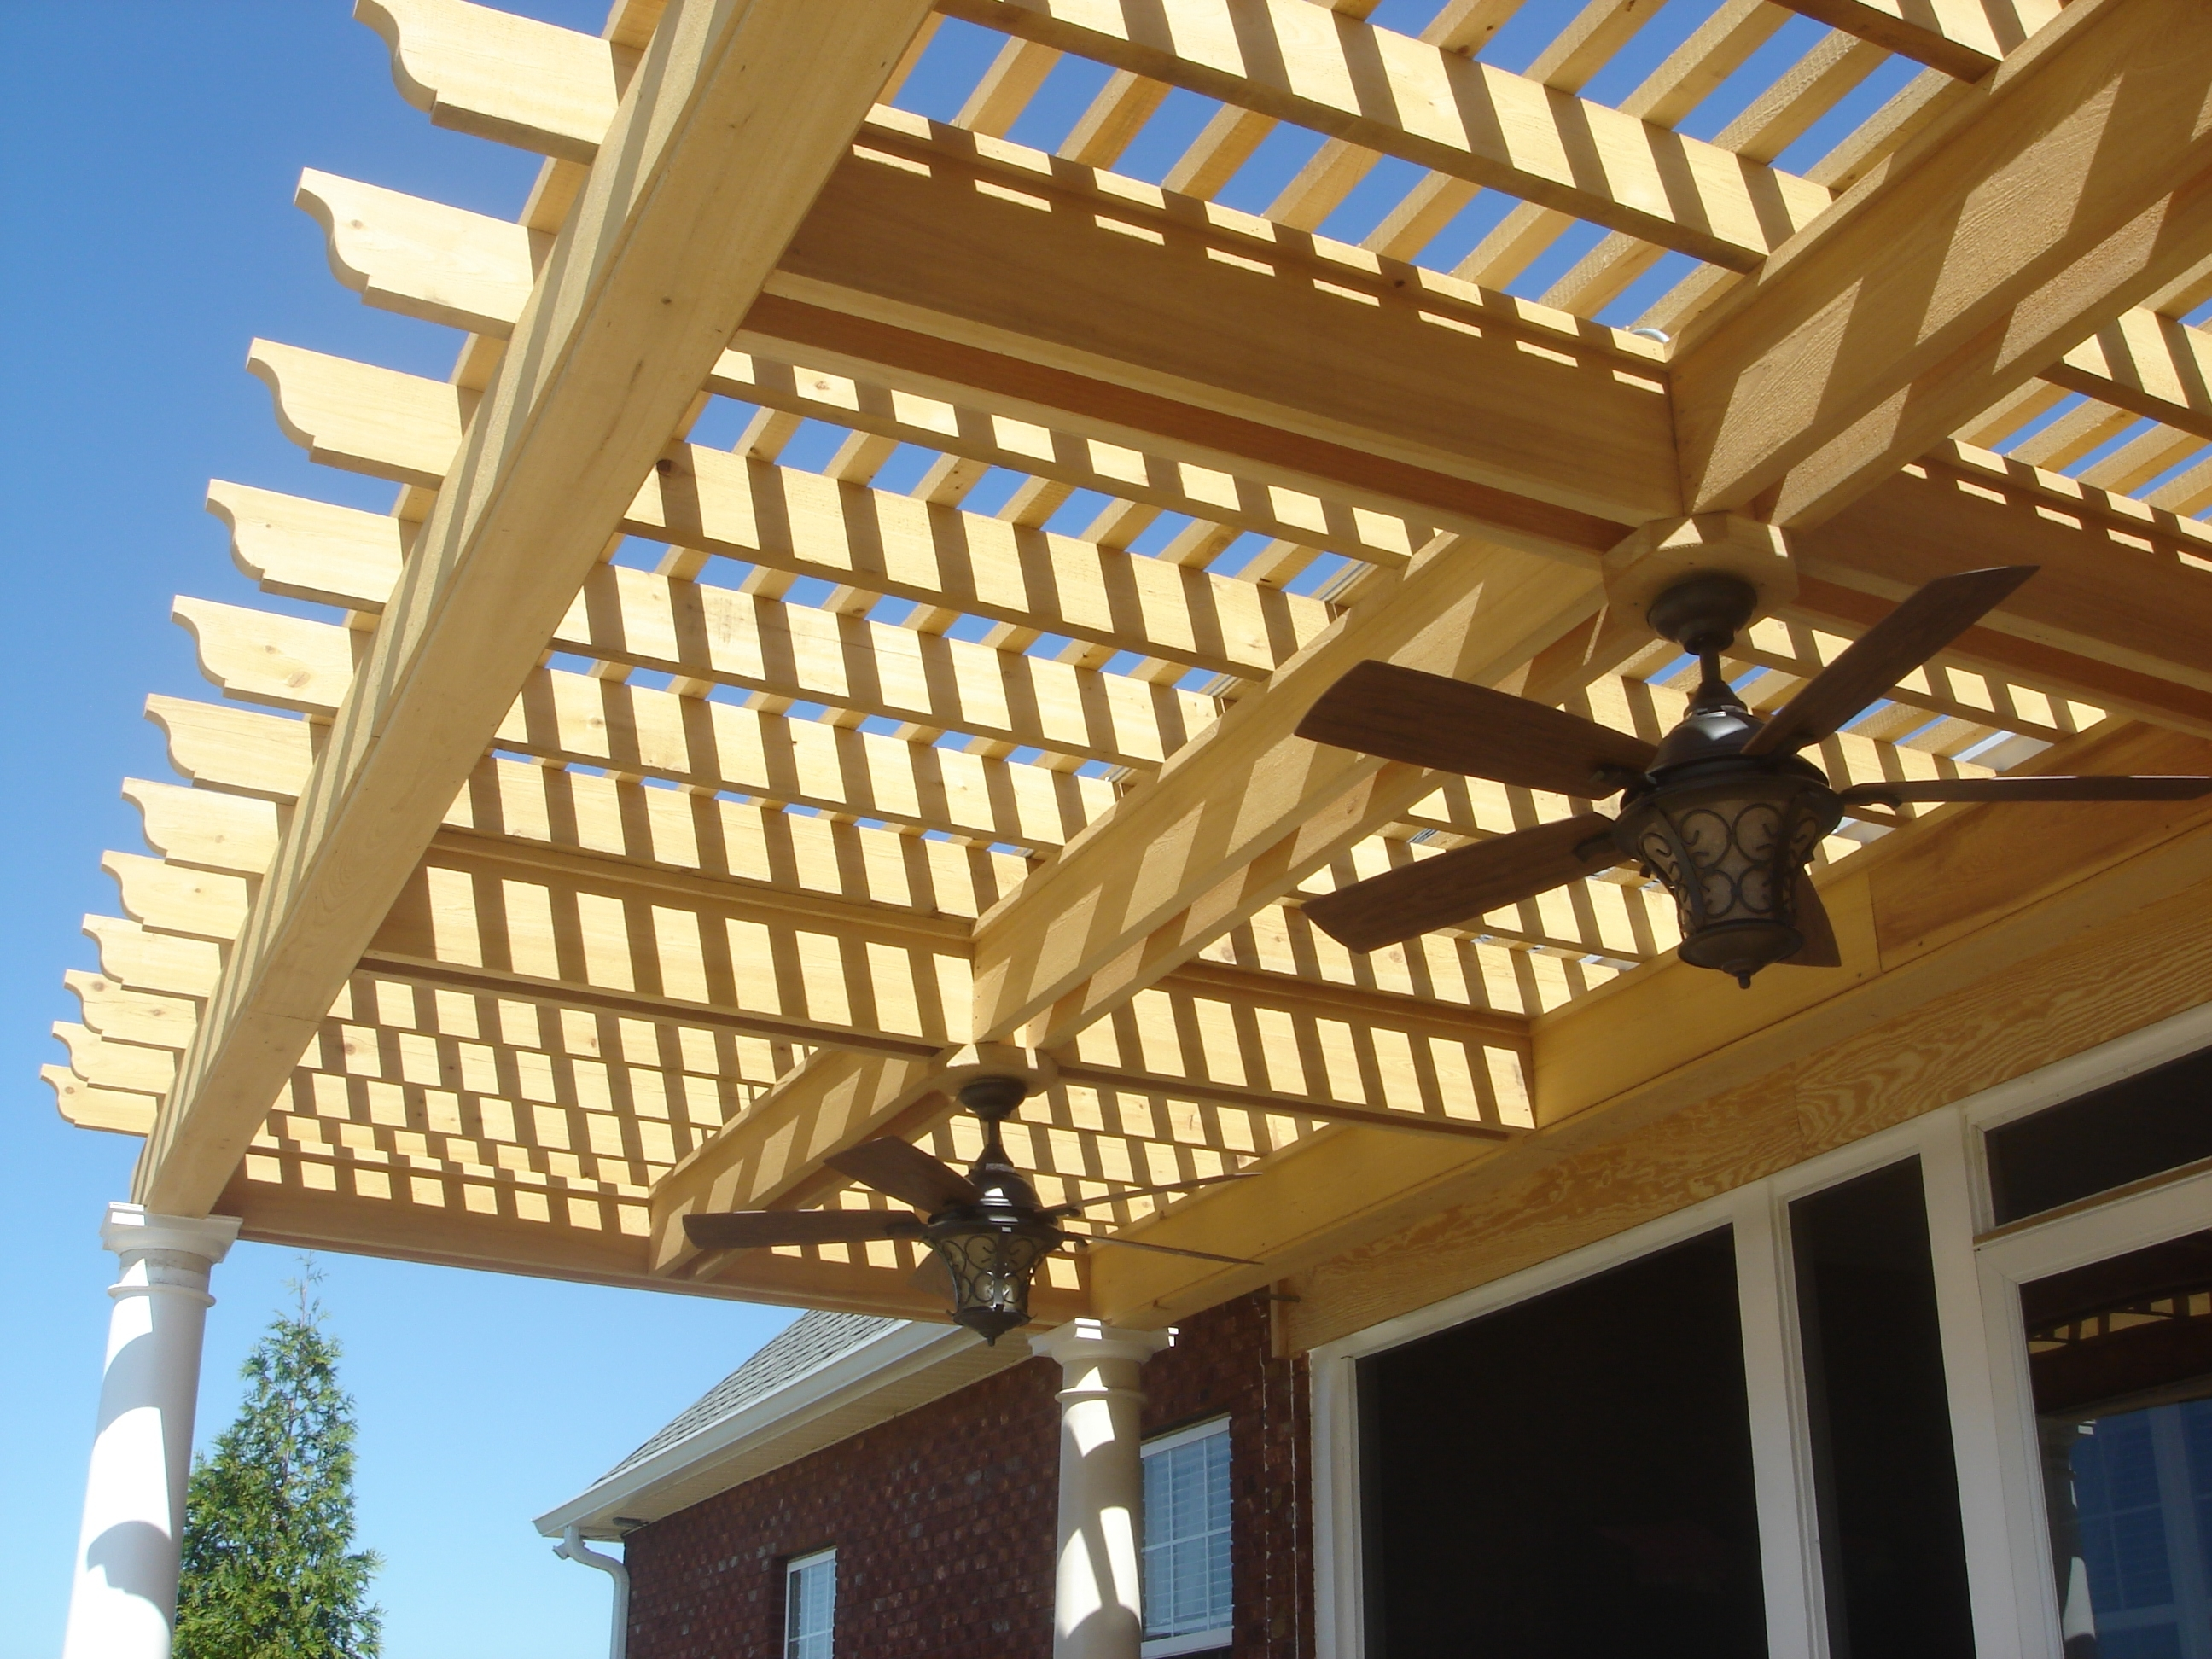 2018 How To Add Lights To A Deck, Screened Porch Or Pergolaarchadeck Intended For Outdoor Ceiling Fans Under Pergola (Gallery 5 of 20)